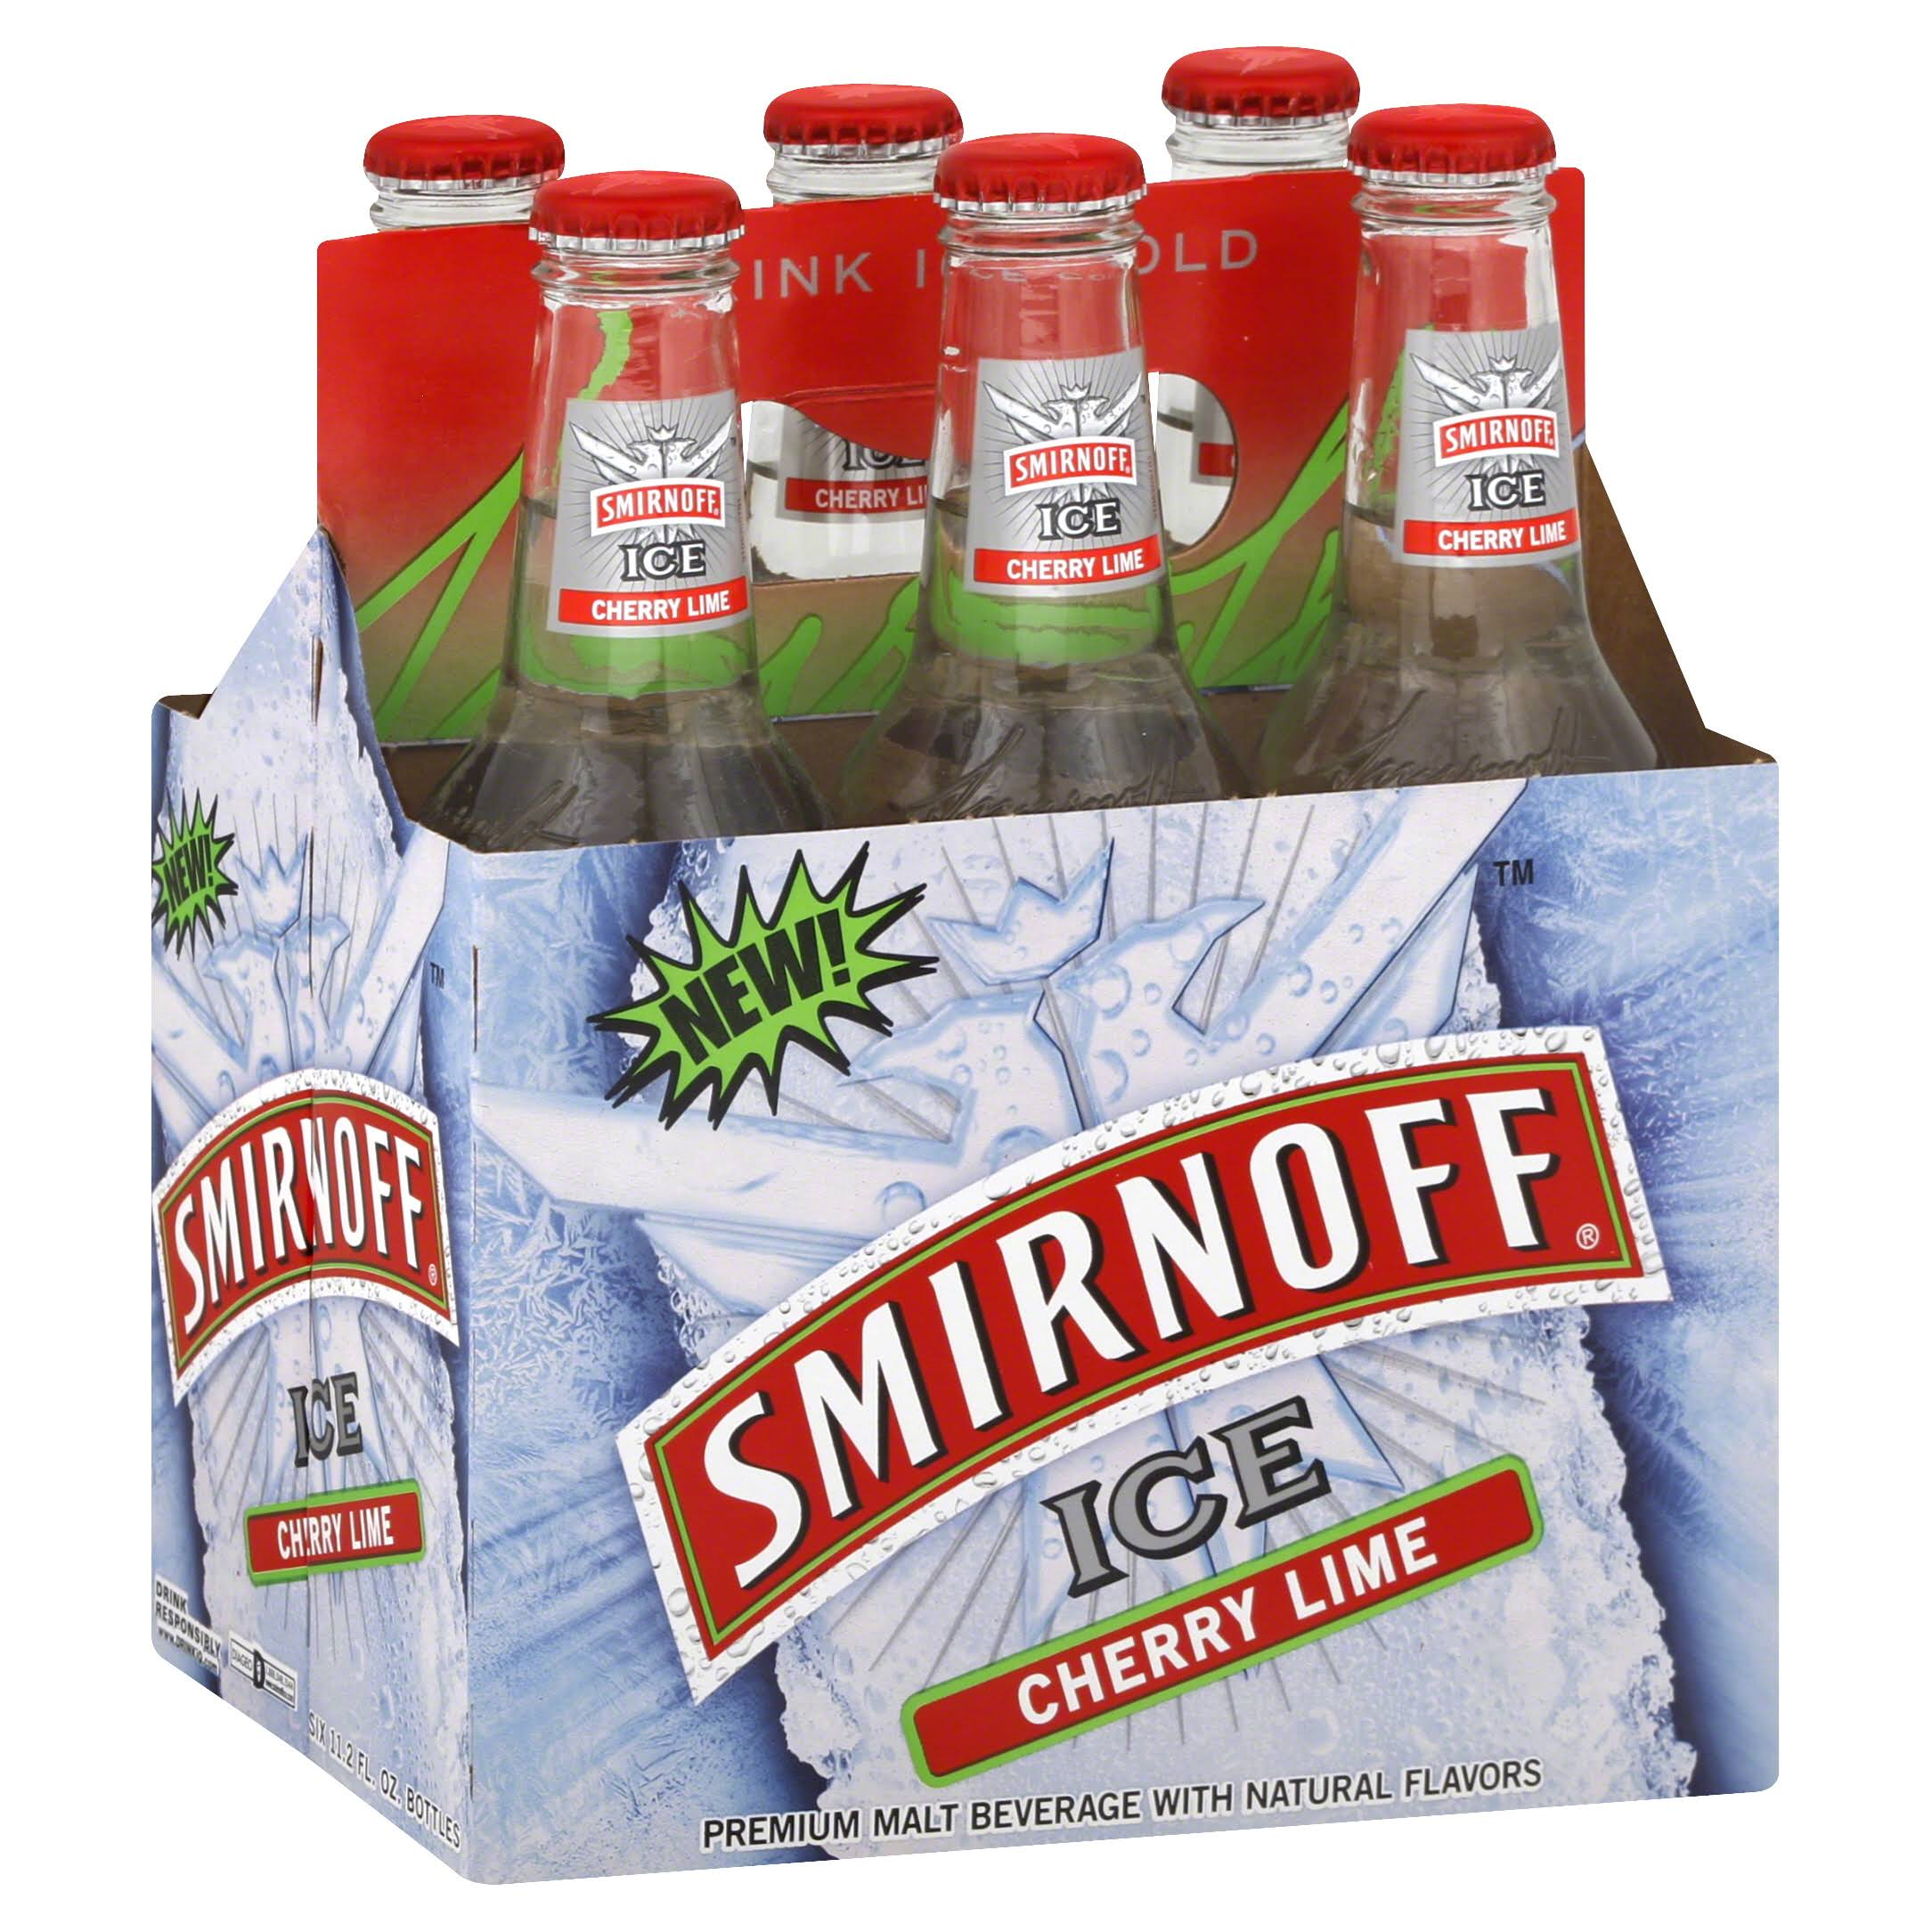 Smirnoff Premium Ice Malt Beverage - Cherry Lime, 67.20floz